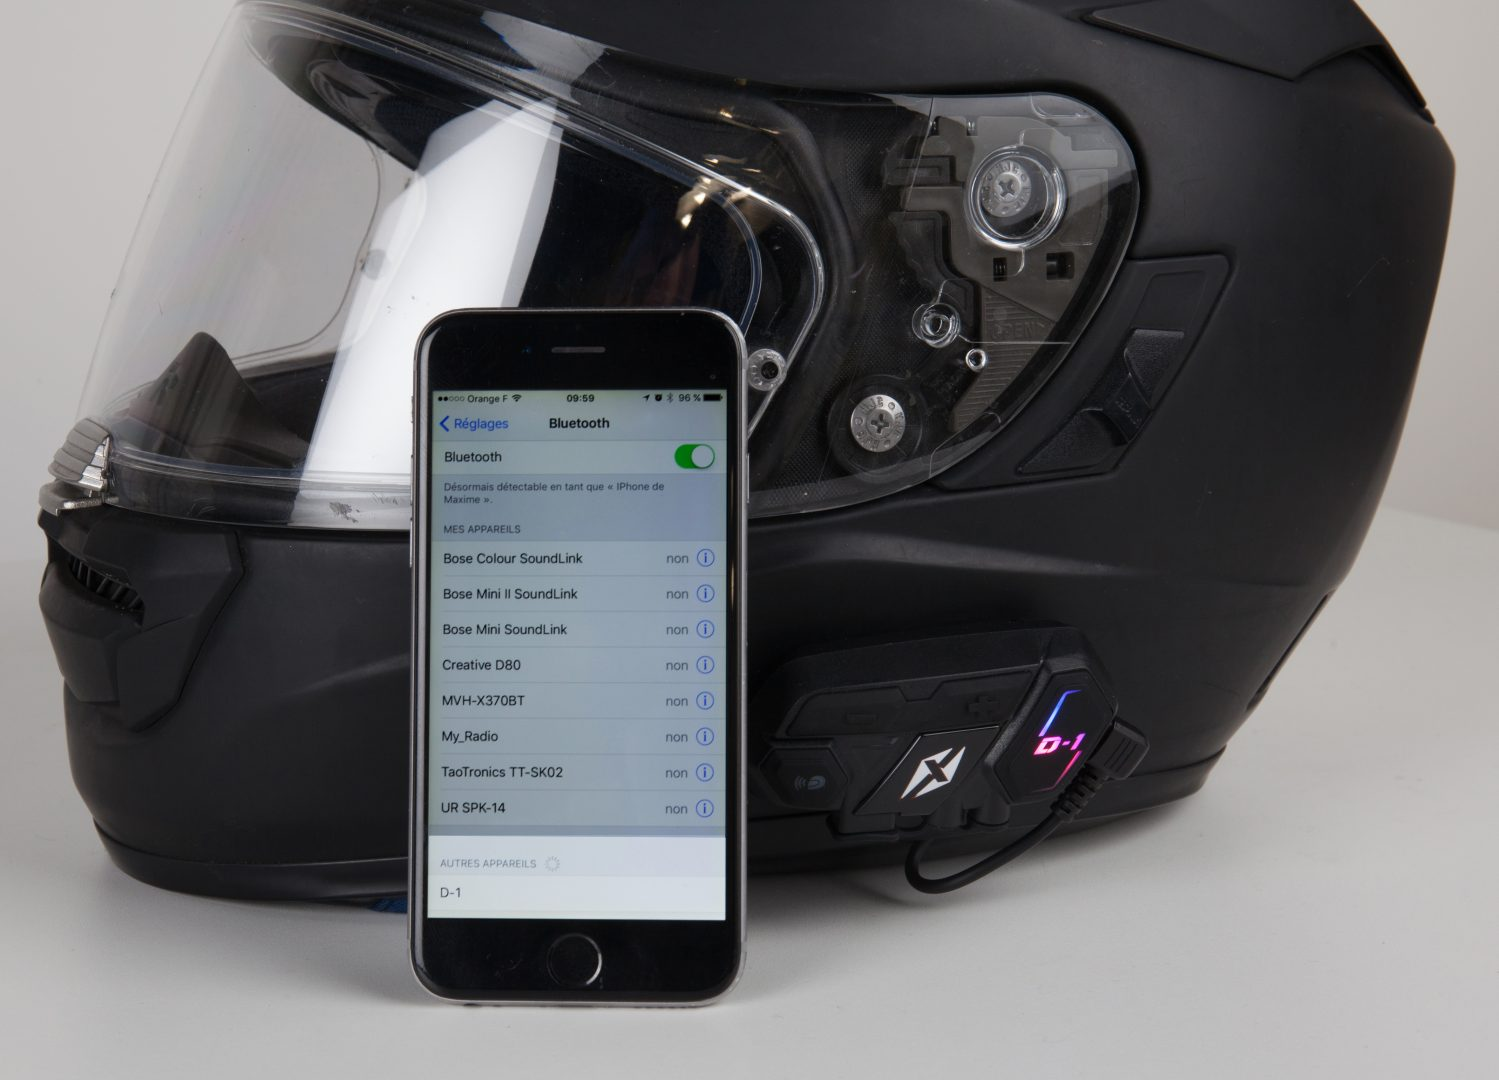 Kit Bluetooth Manos Libres Elegir Bien El Intercomunicador Para La Moto Enjoytheride